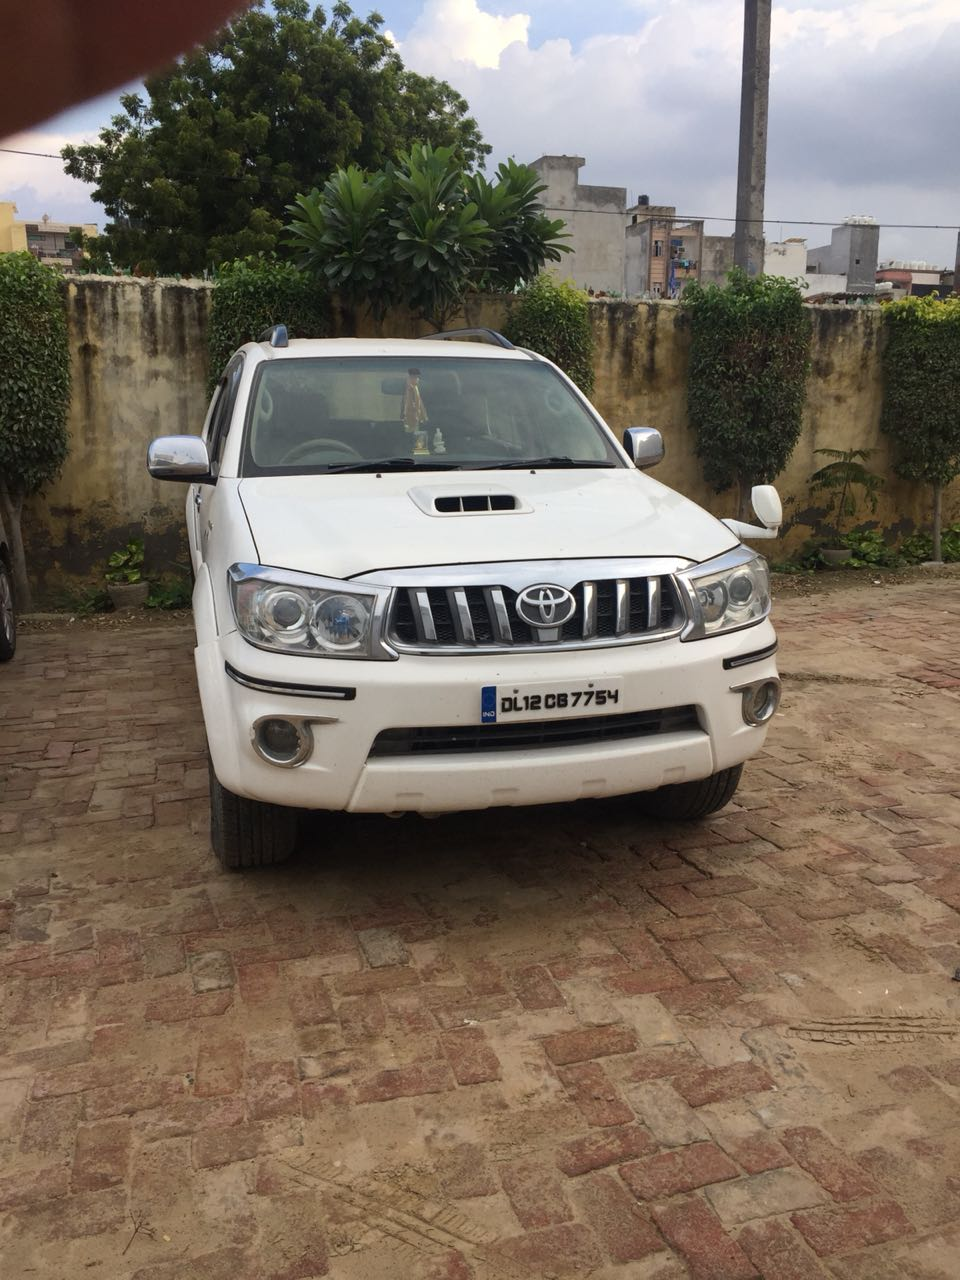 Secondhand Fortuner 4x4 car in Dwarka and Uttam Nagar